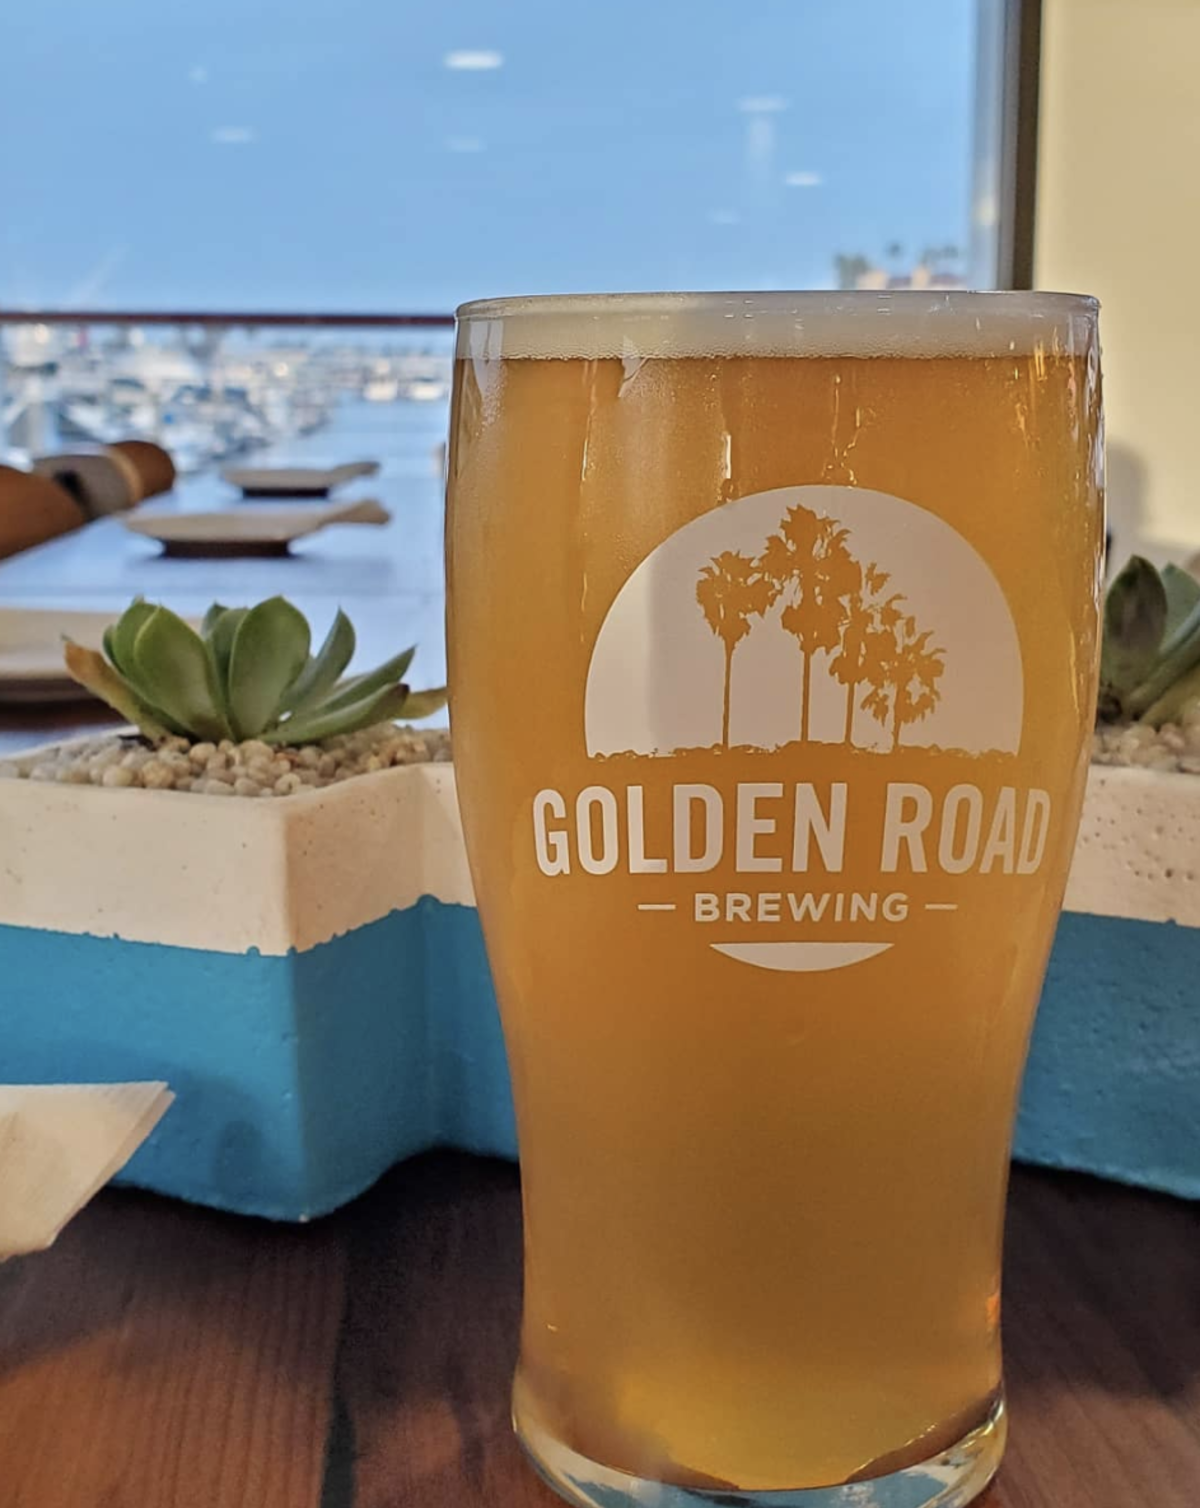 Golden Road Brewery